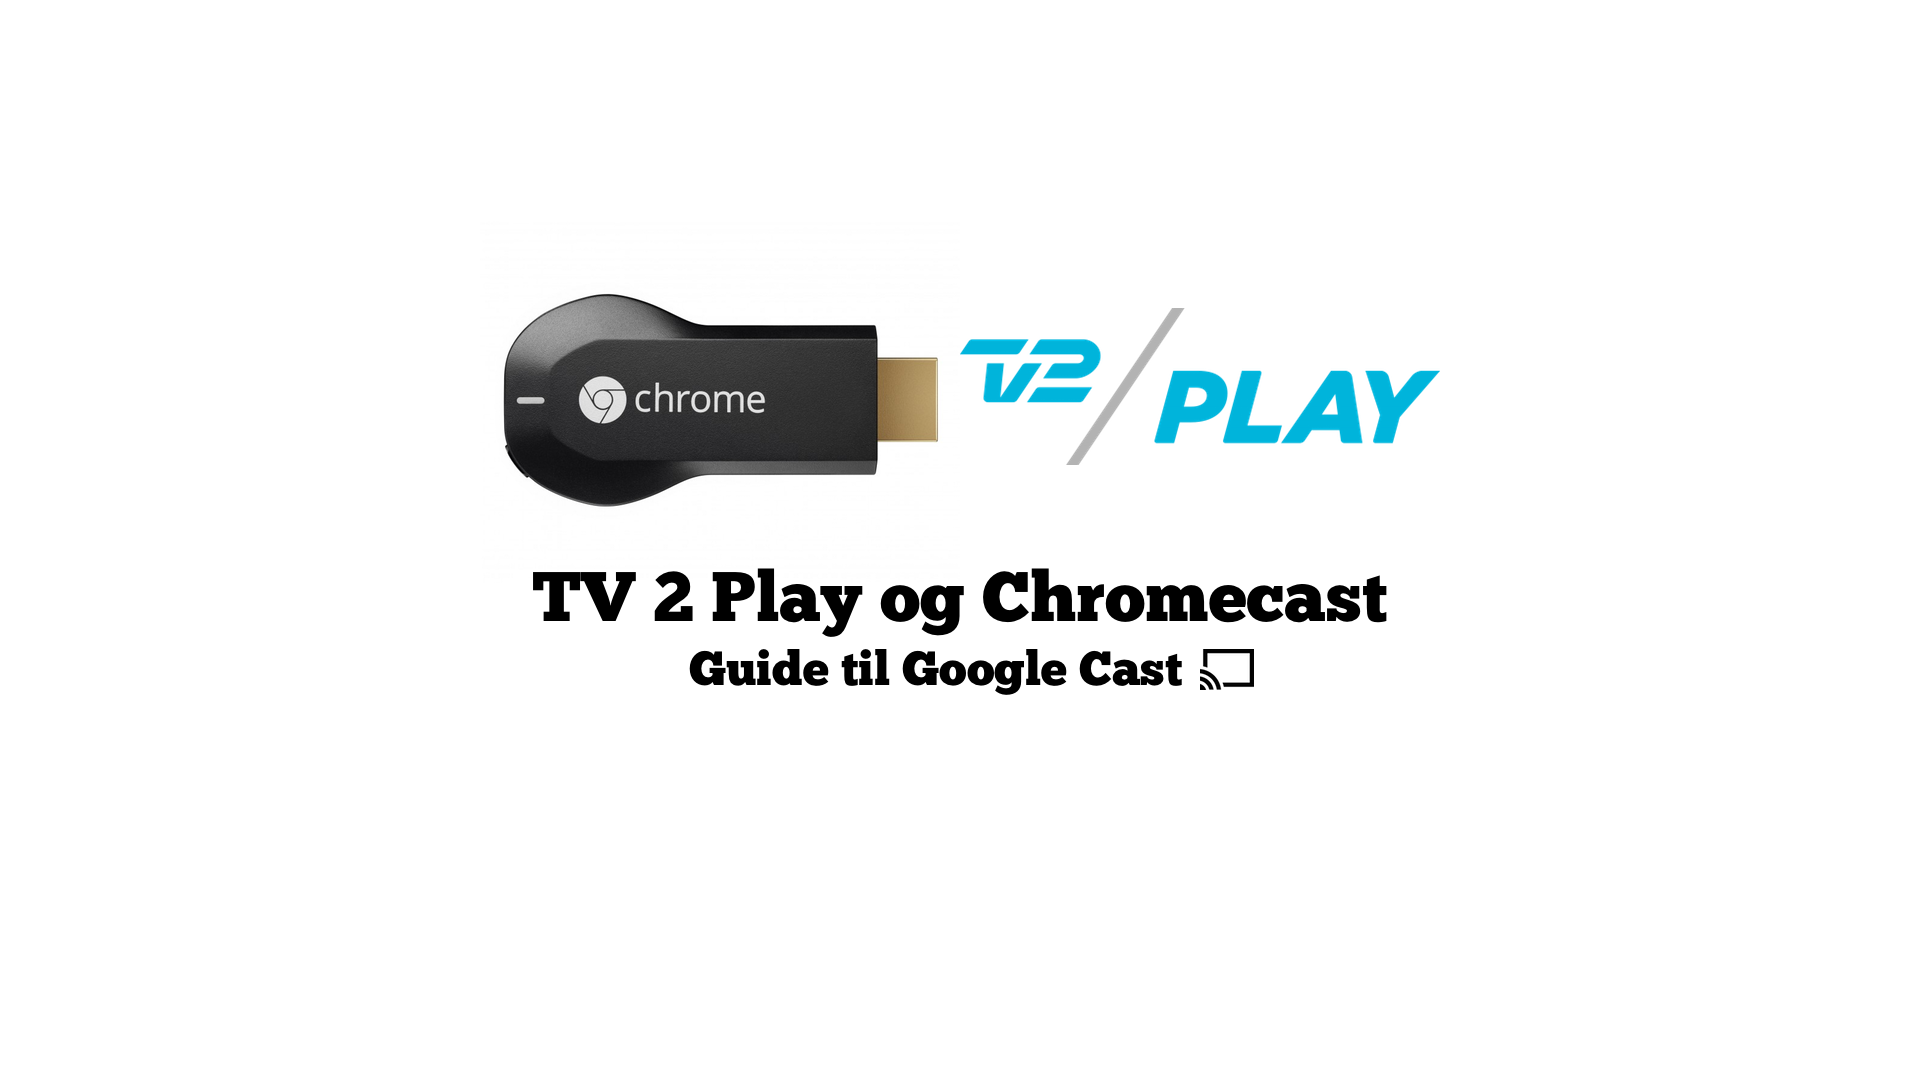 TV 2 Play med Google Cast og Chromecast